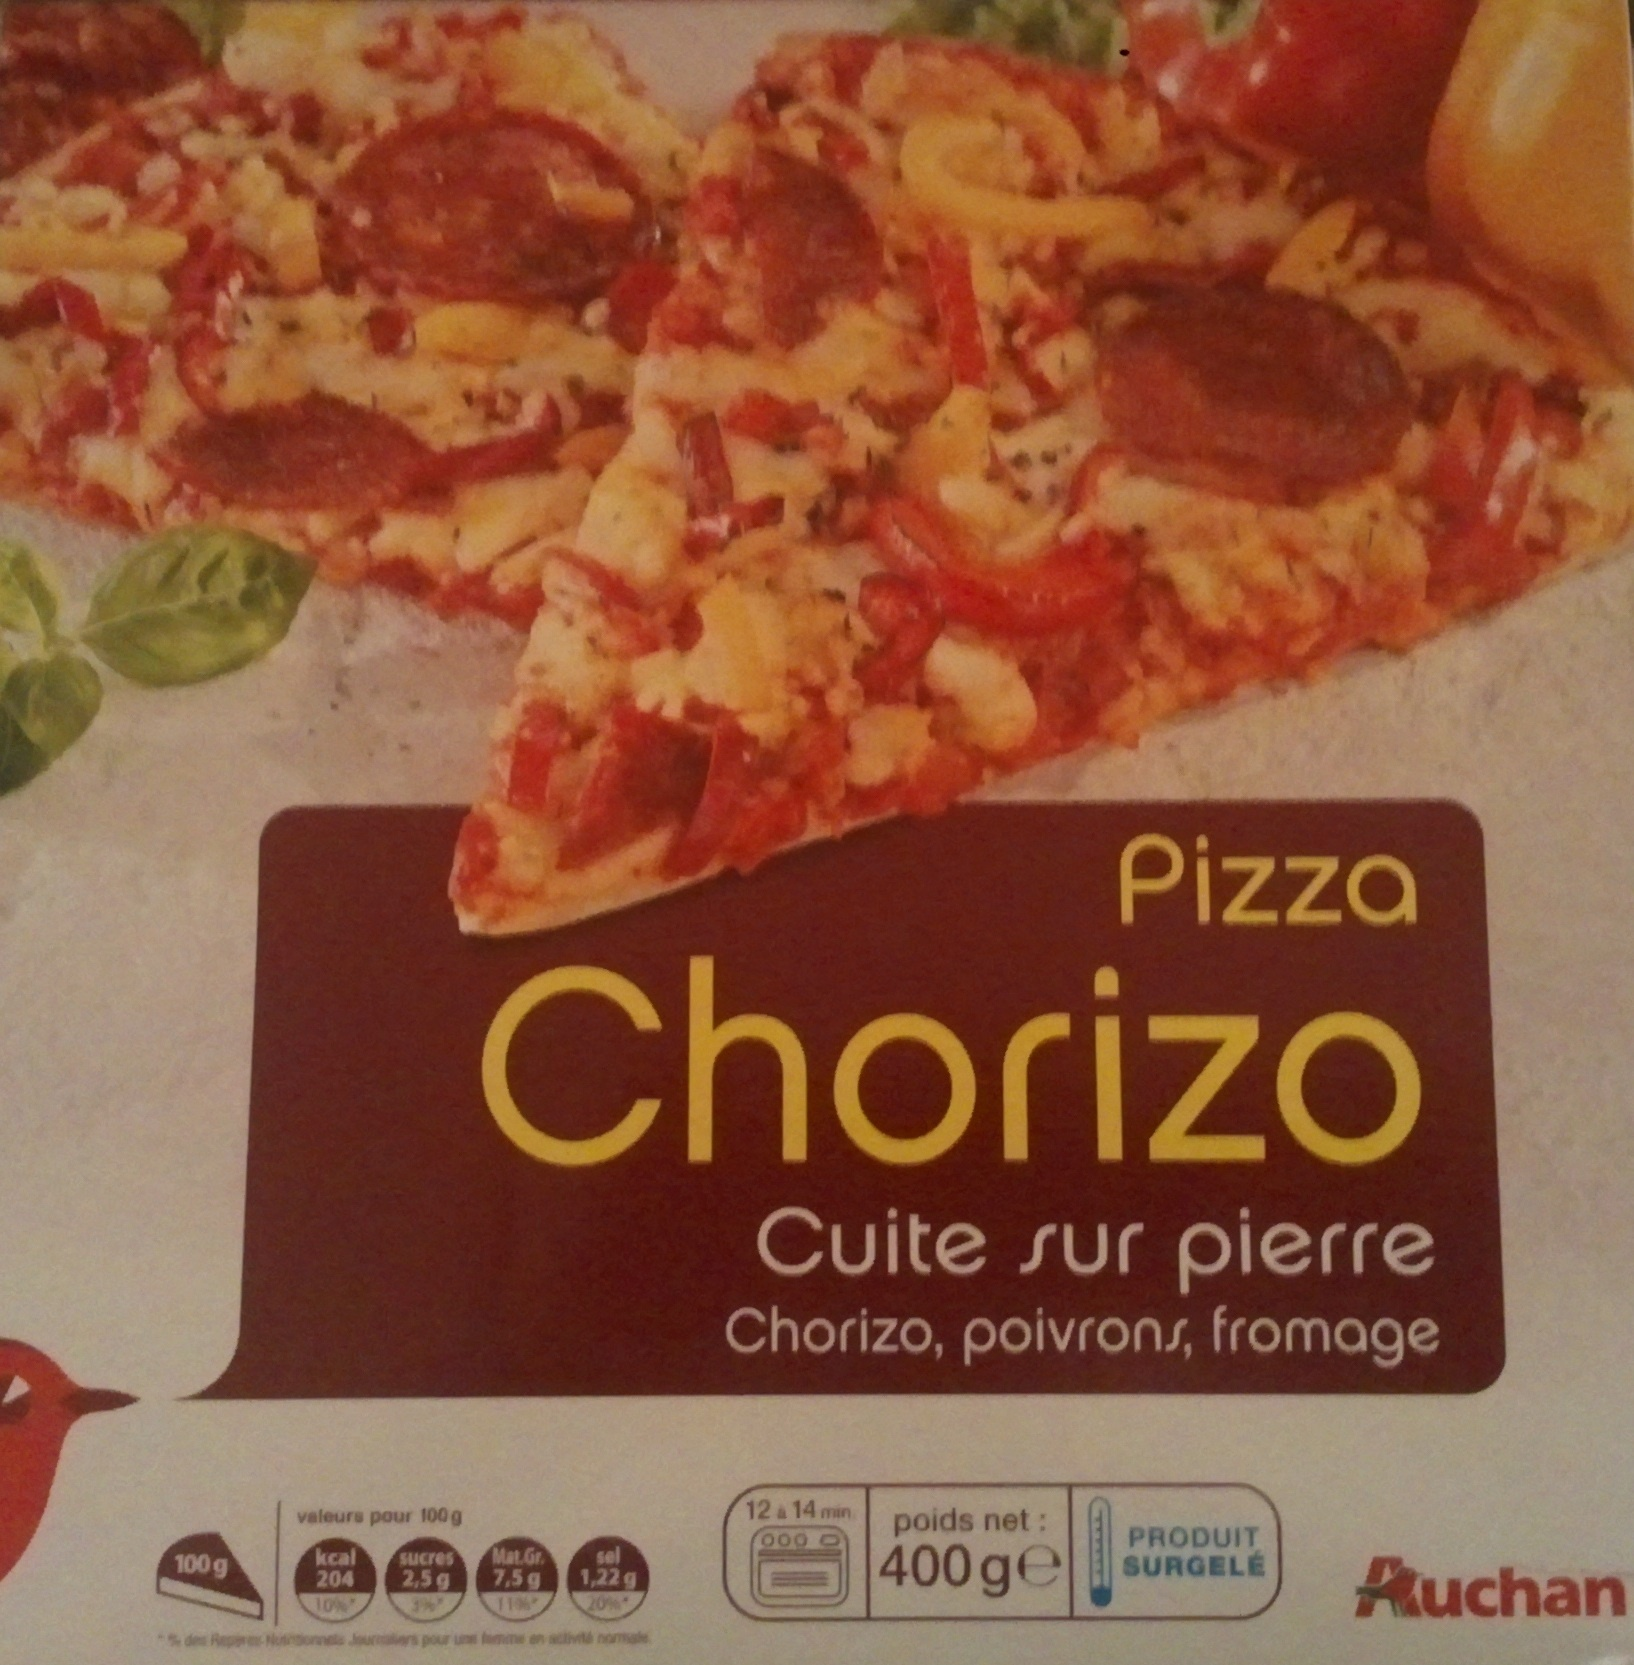 pizza chorizo cuite sur pierre auchan 400 g. Black Bedroom Furniture Sets. Home Design Ideas